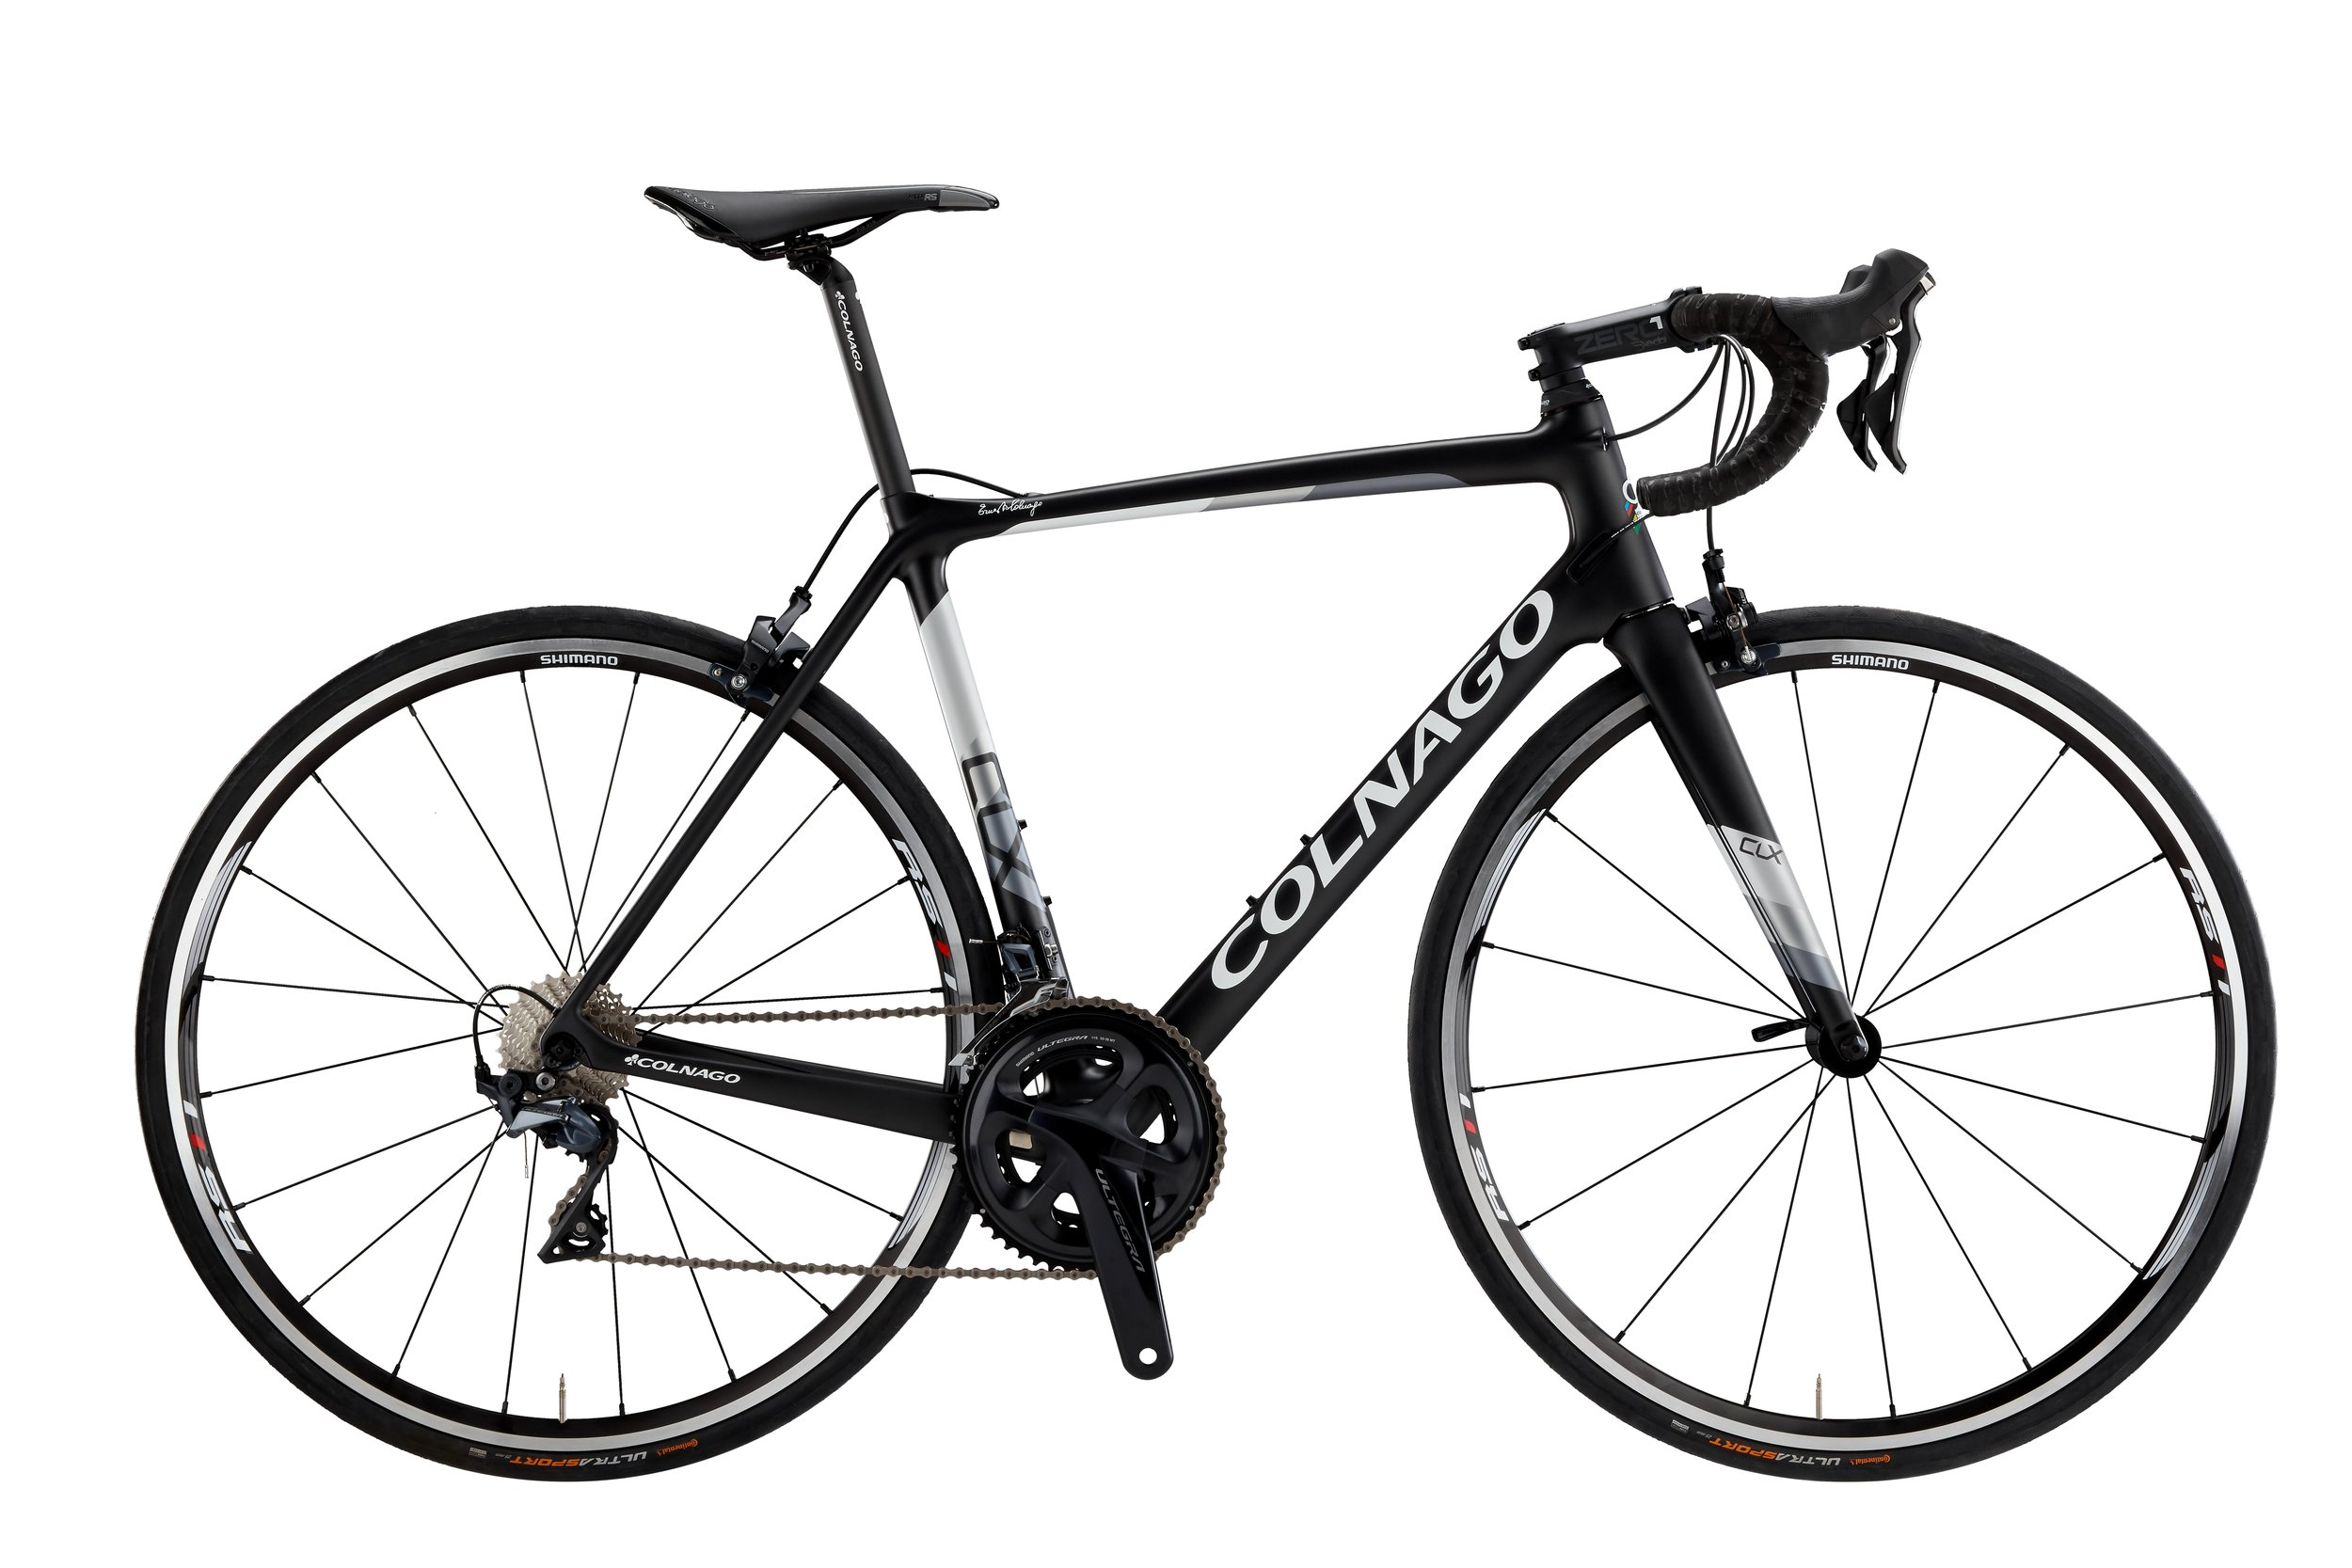 CJBW    SGD $4,822 (Ultegra Disc)    SGD $4,092 (105 Disc)   Specifications  Here